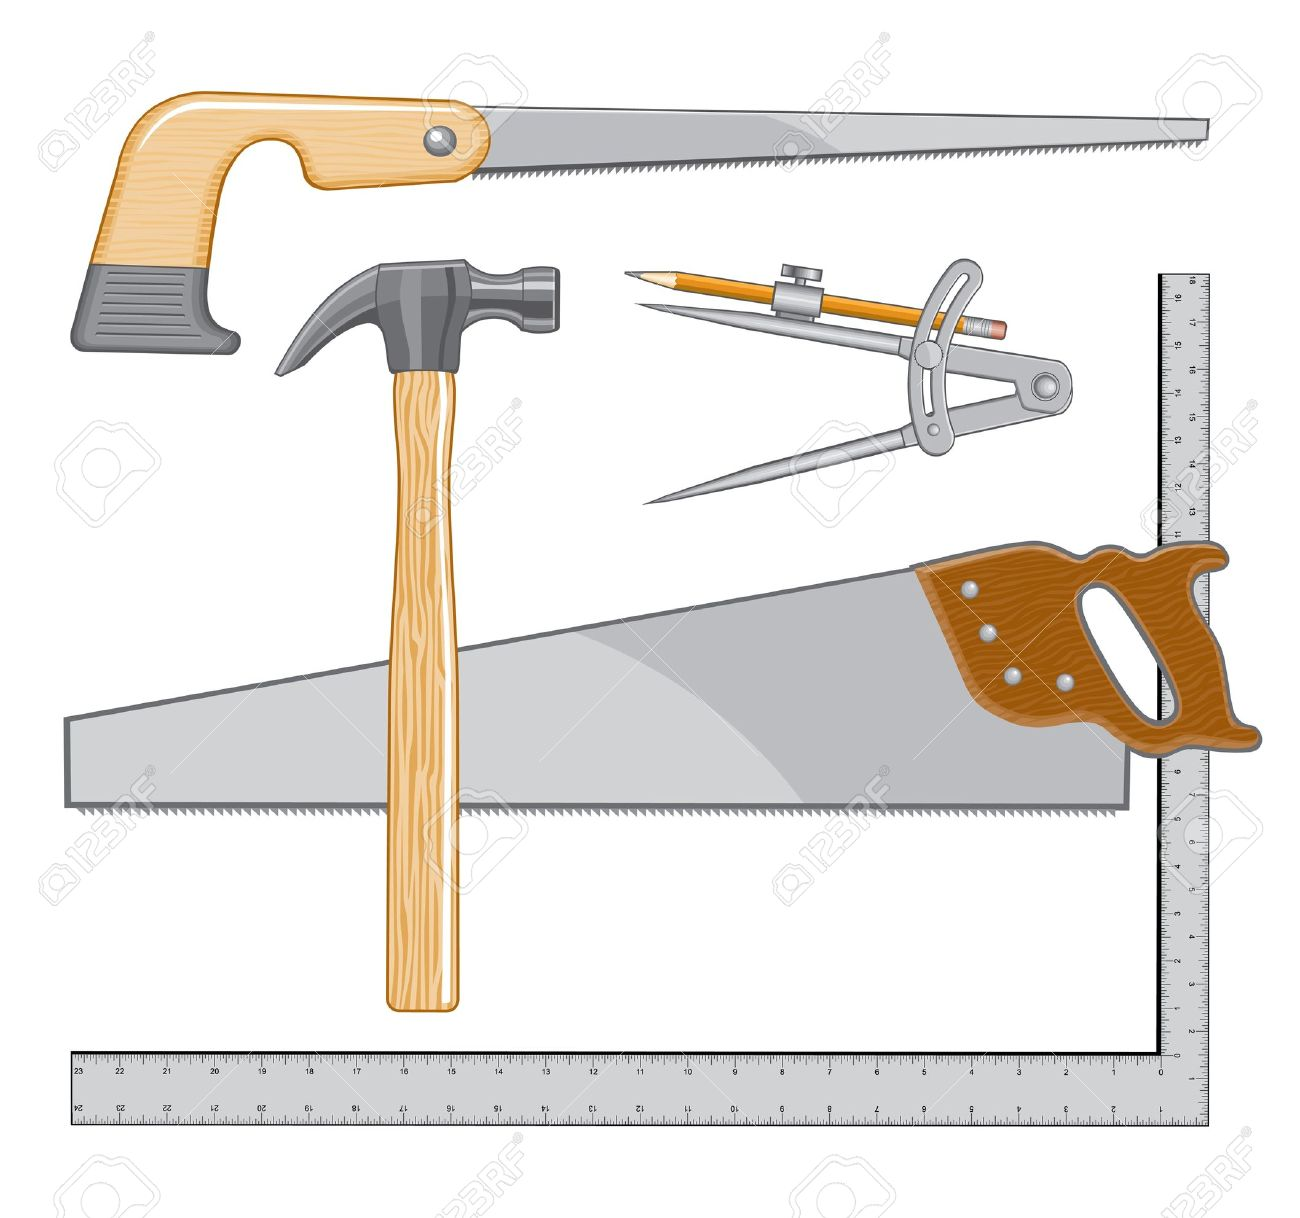 carpenters tool logo is an illustration that can be used as a